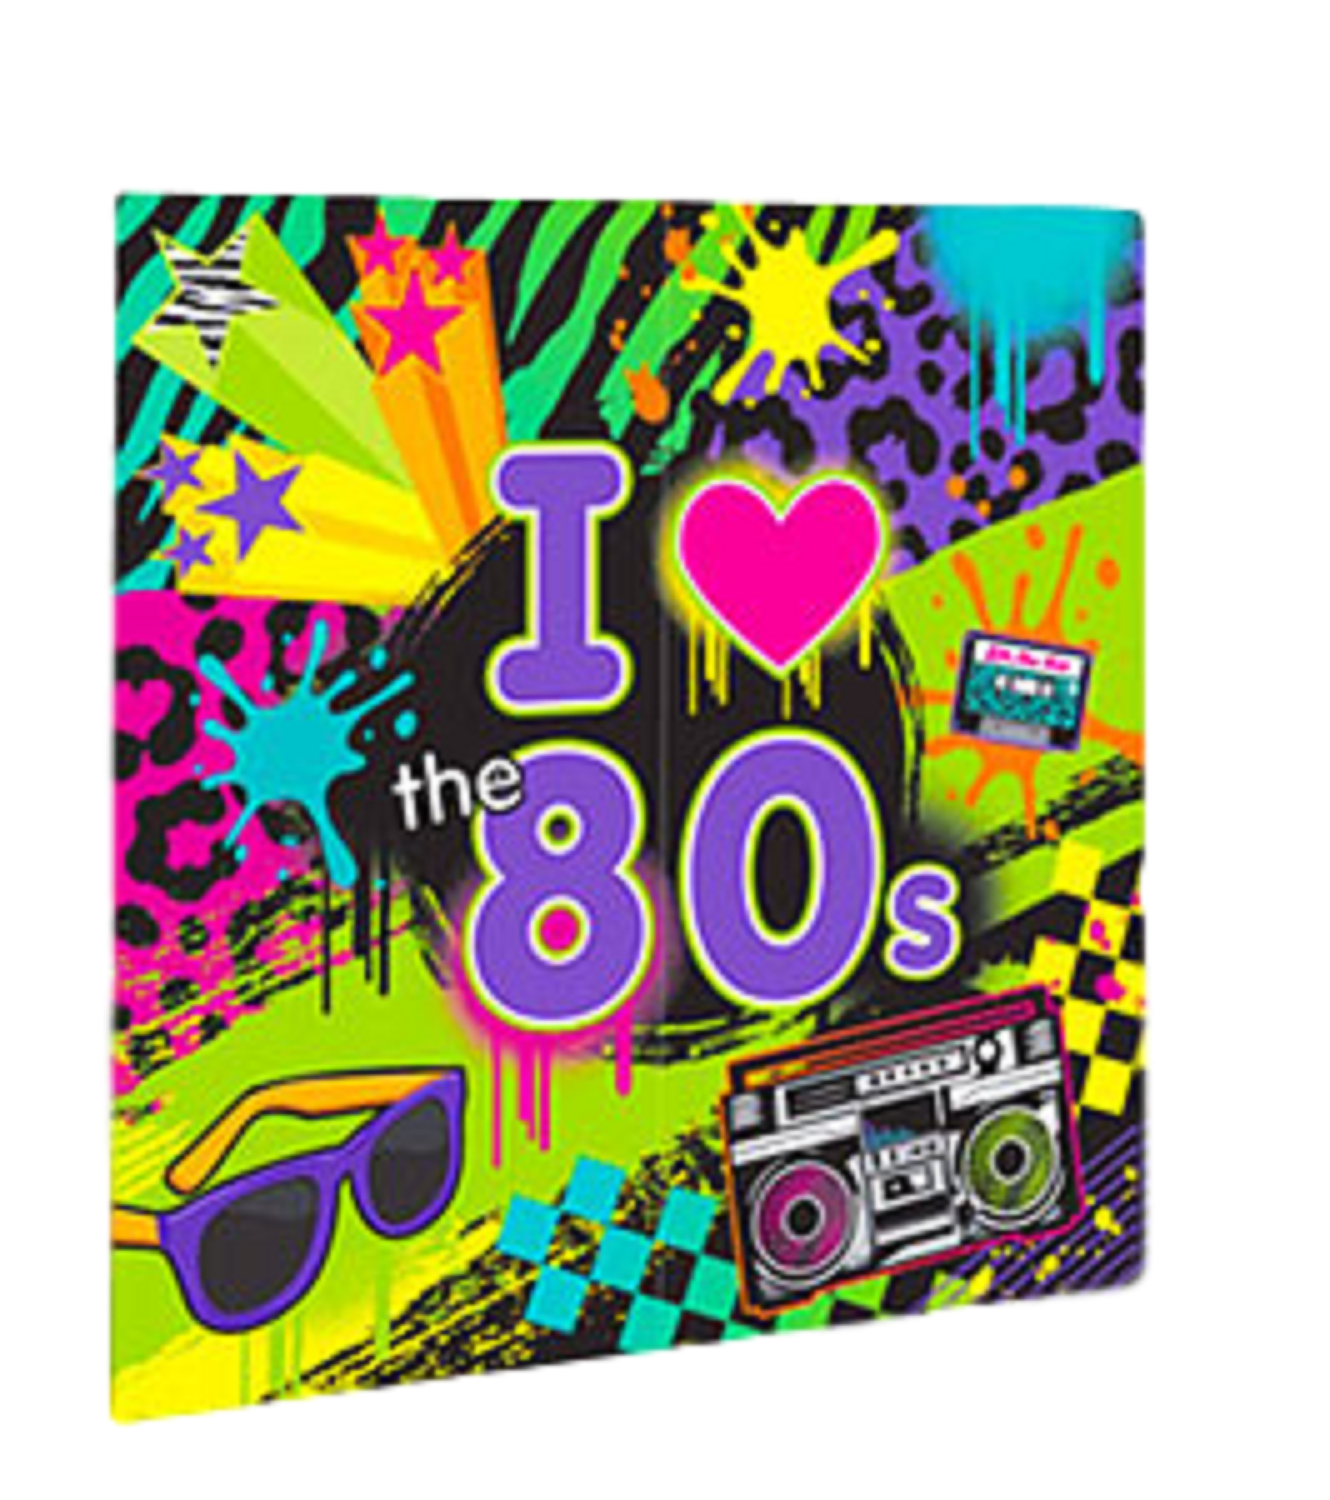 Totally I Love The 80s 1980s Eighties Giant 25ft Themed Party Decoration Banner